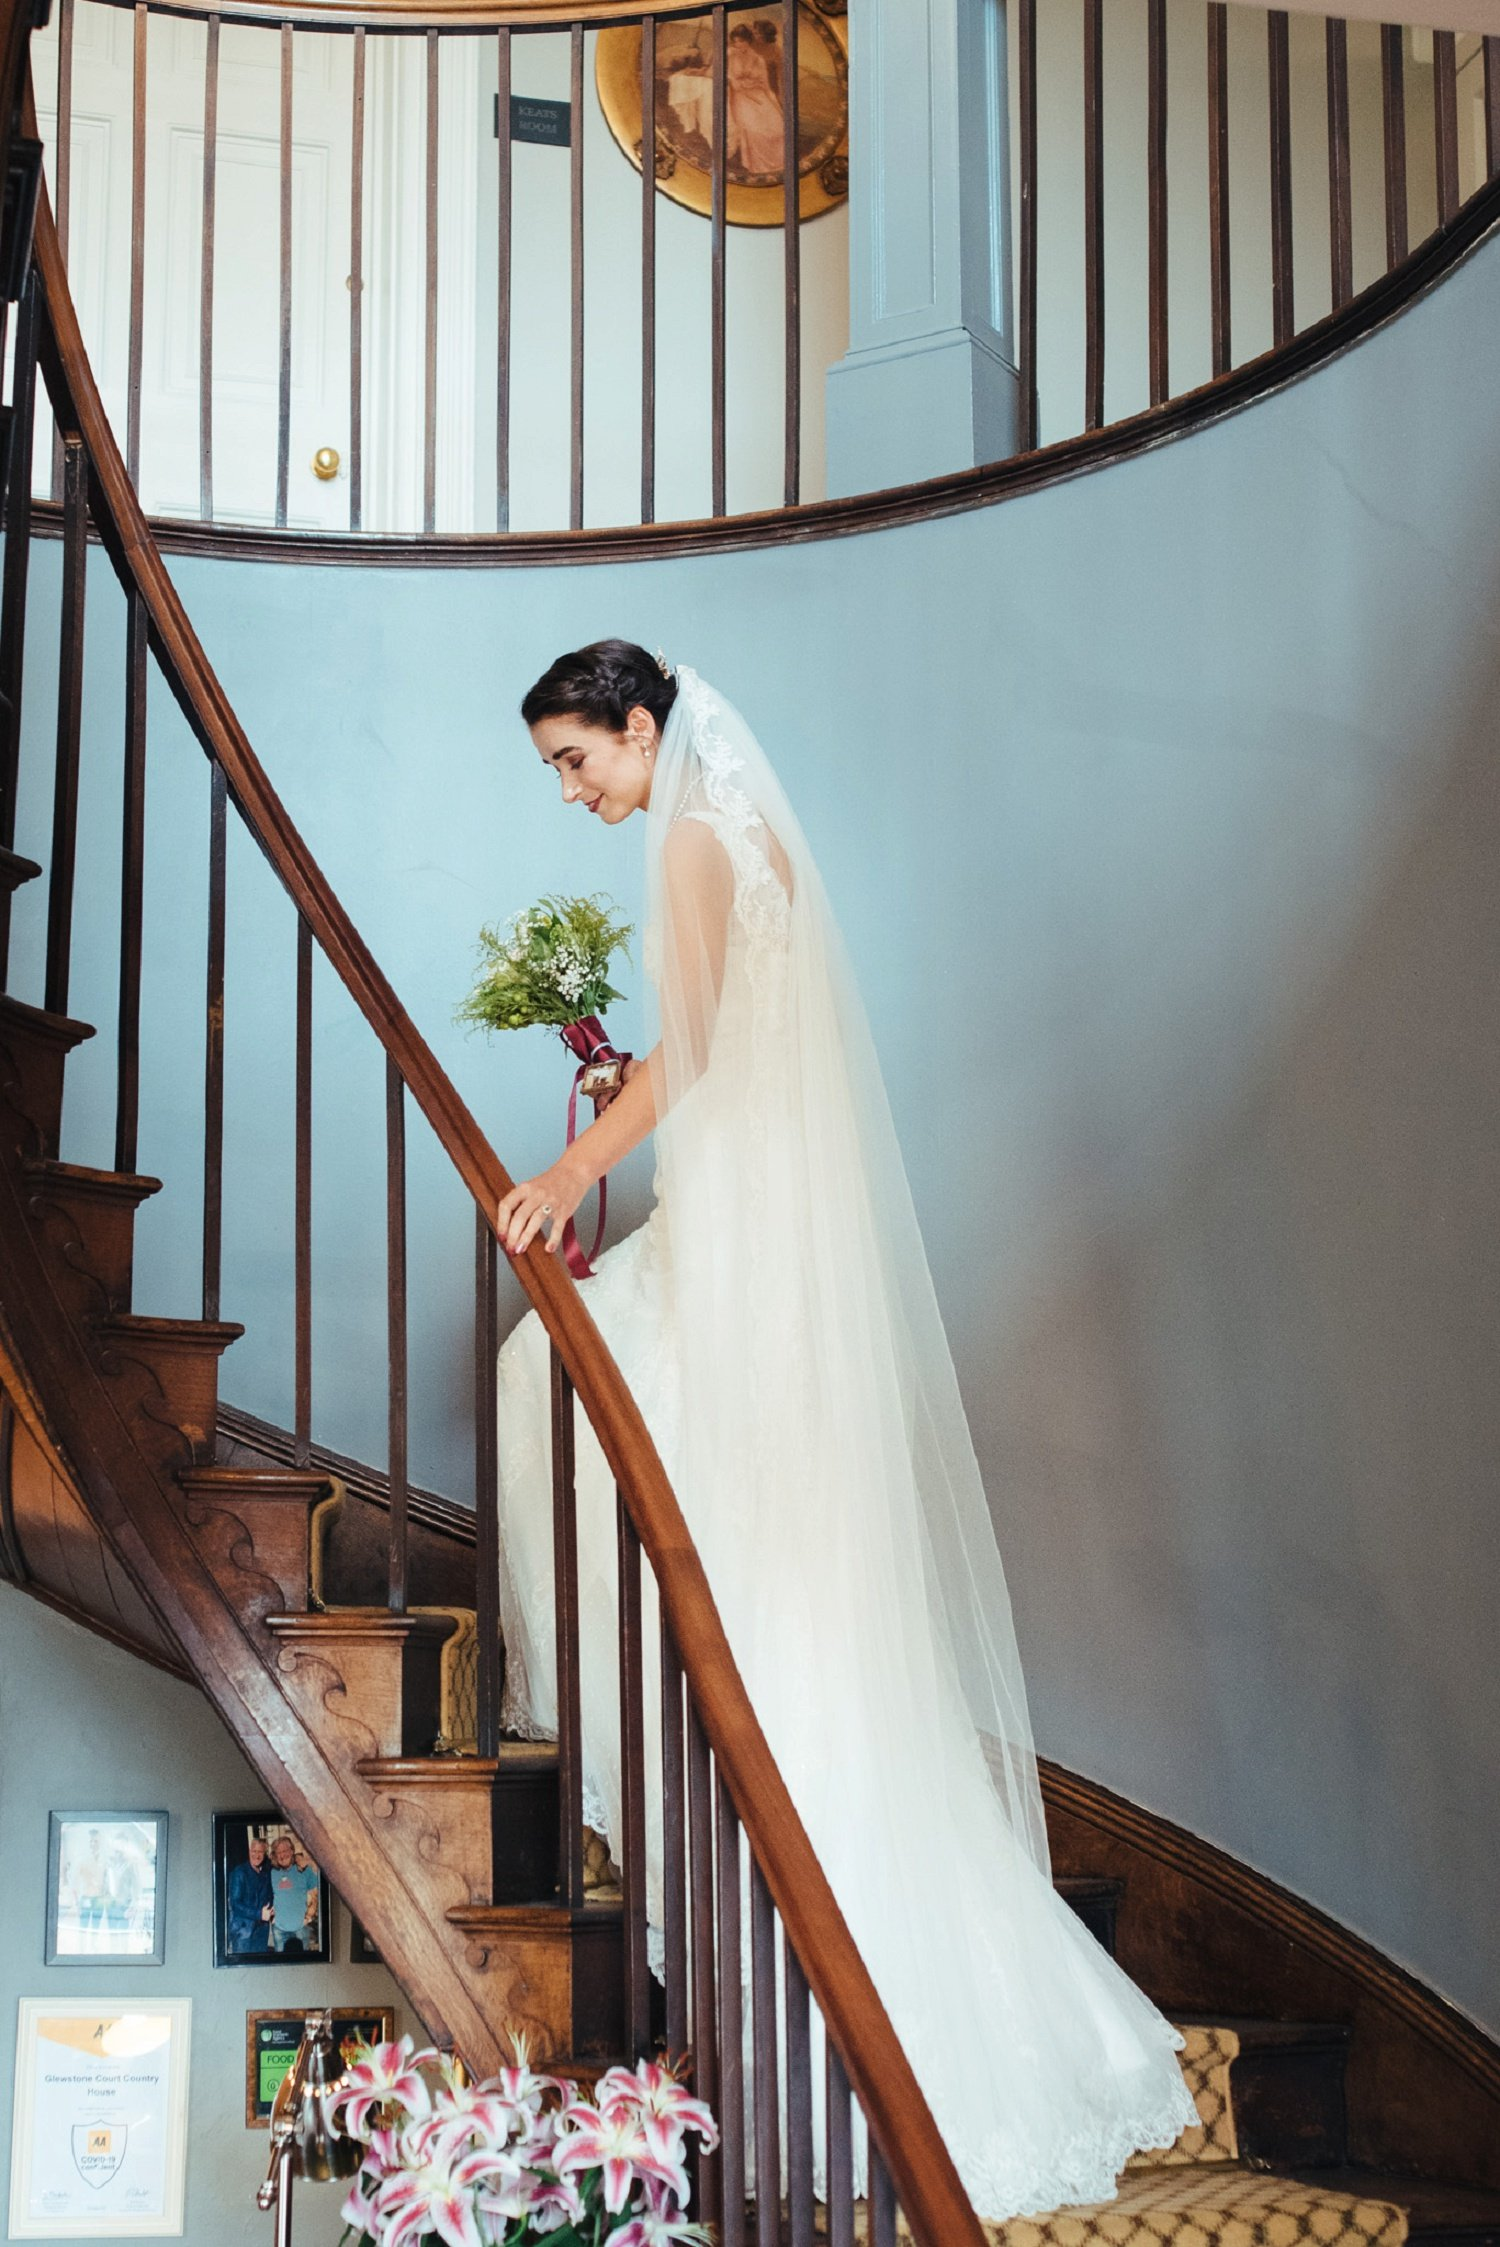 Bride going up the spiral staircase at Glewstone